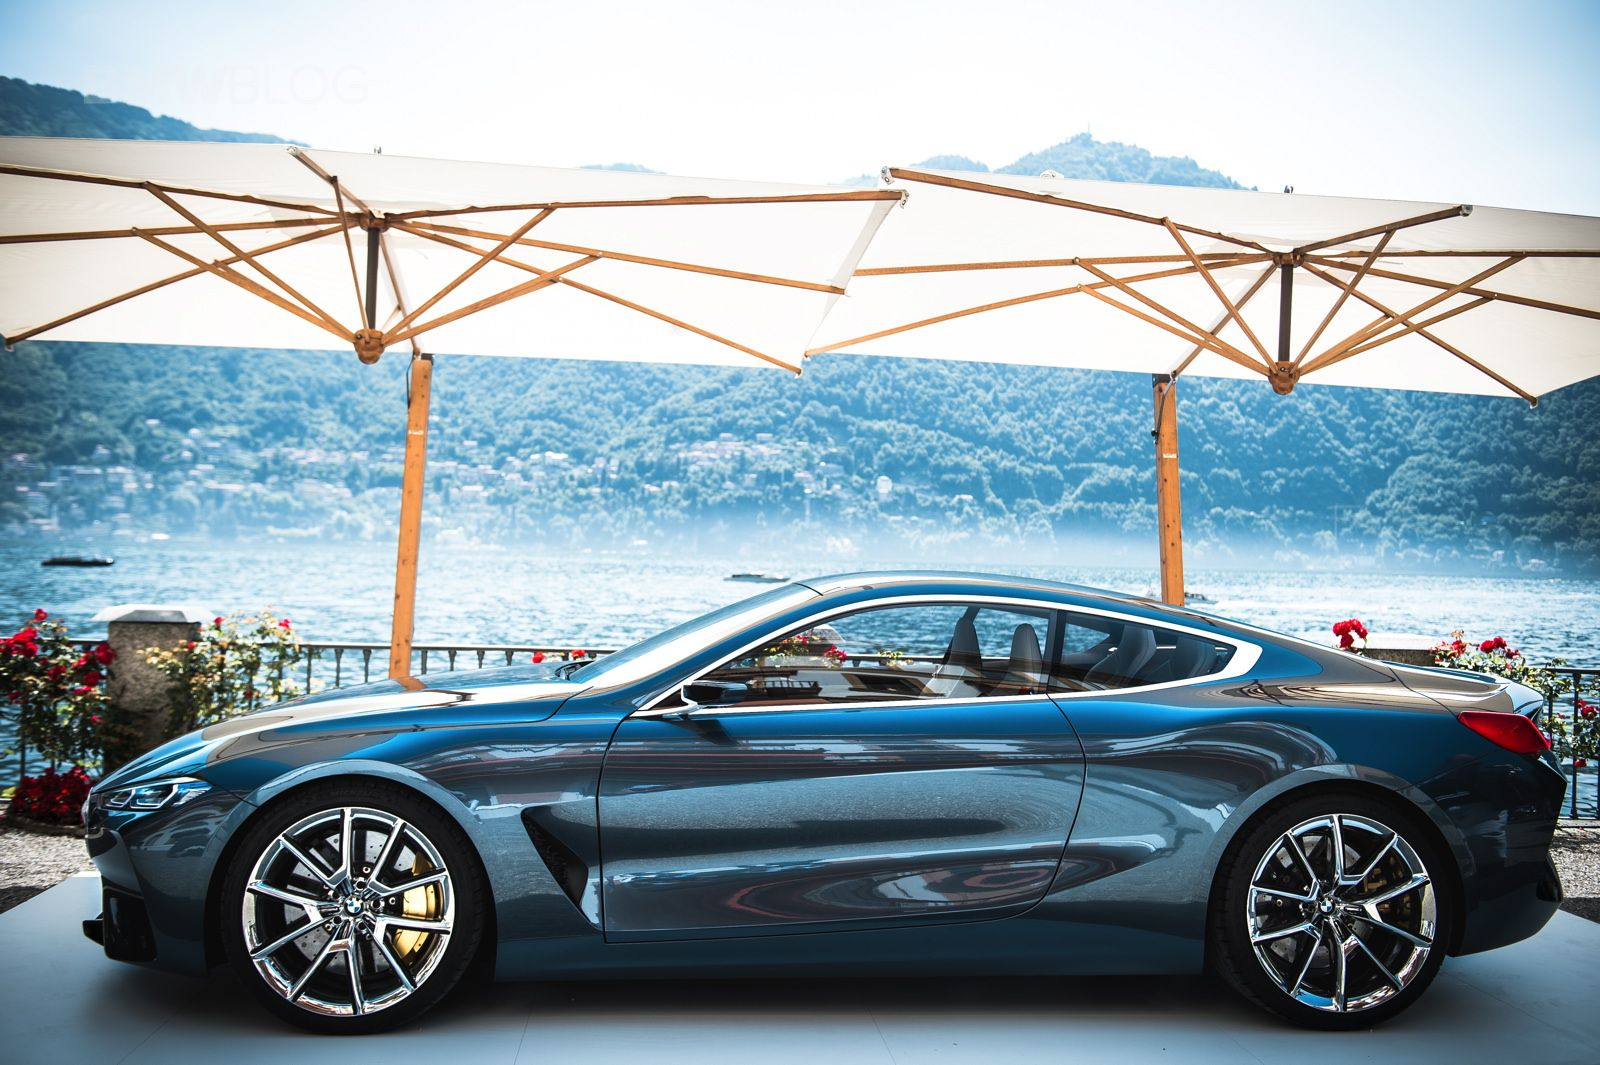 The best photo gallery of the bmw concept 8 series at villa d este